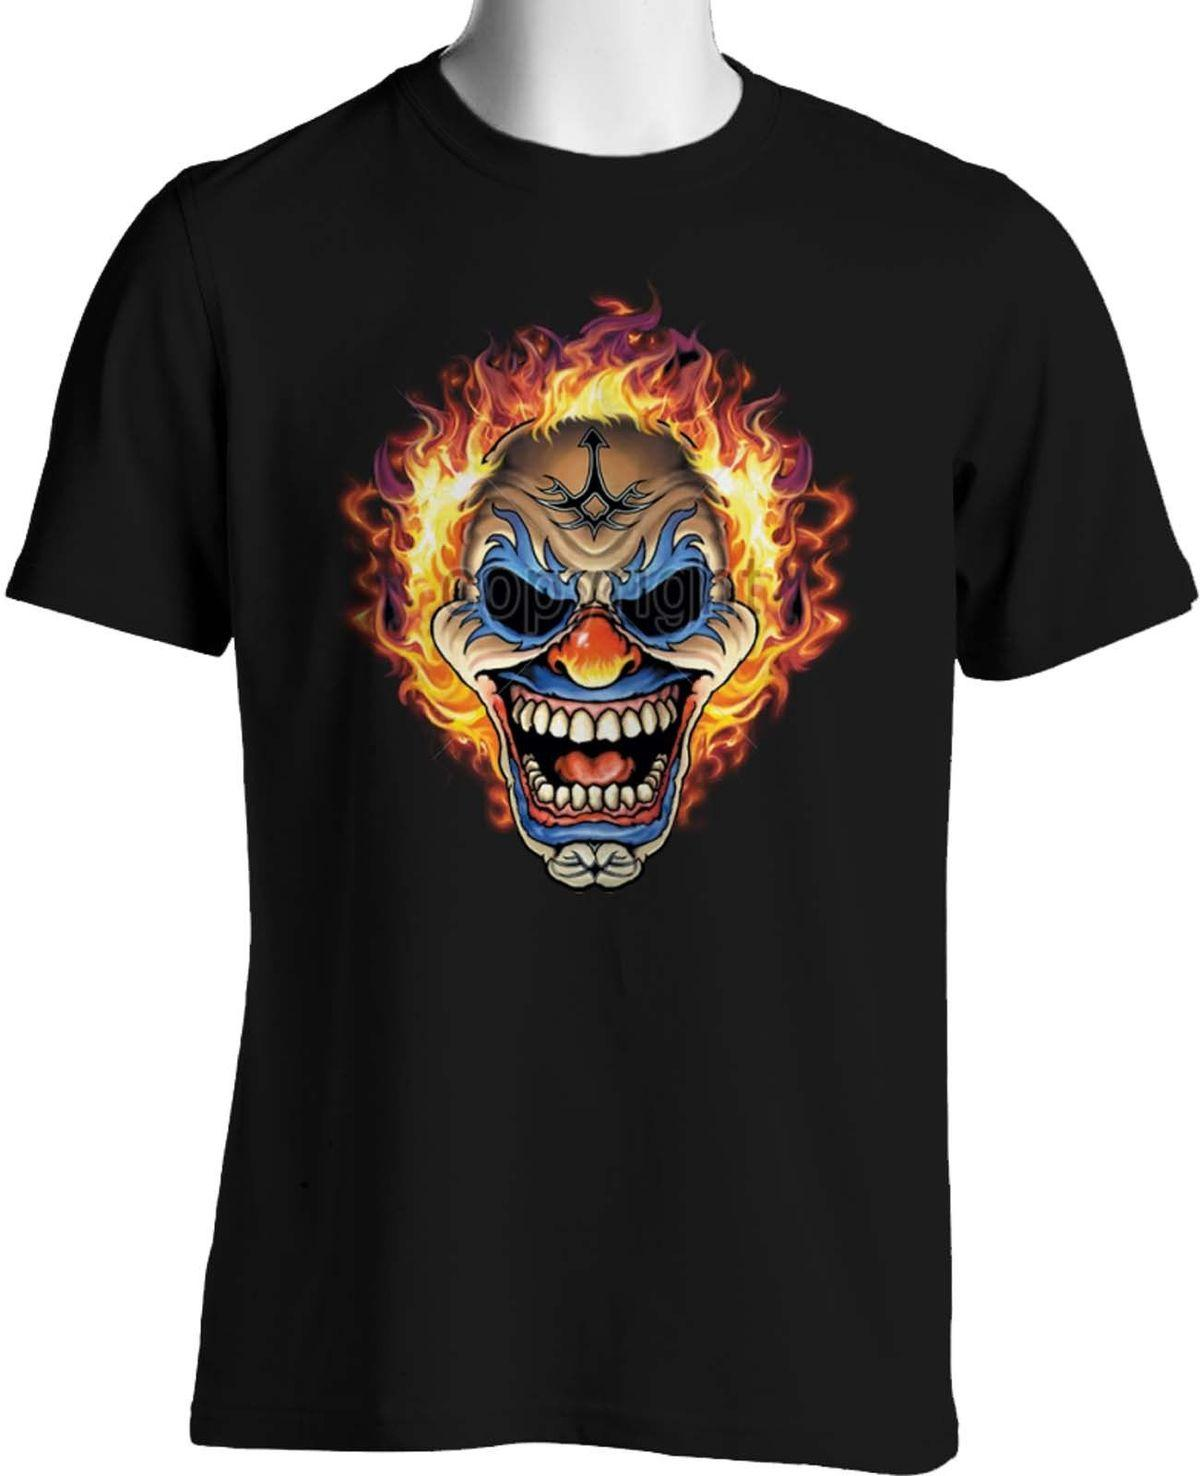 I Hate Clowns T Shirt Flames Circus Scary Clown Evil Face Small To